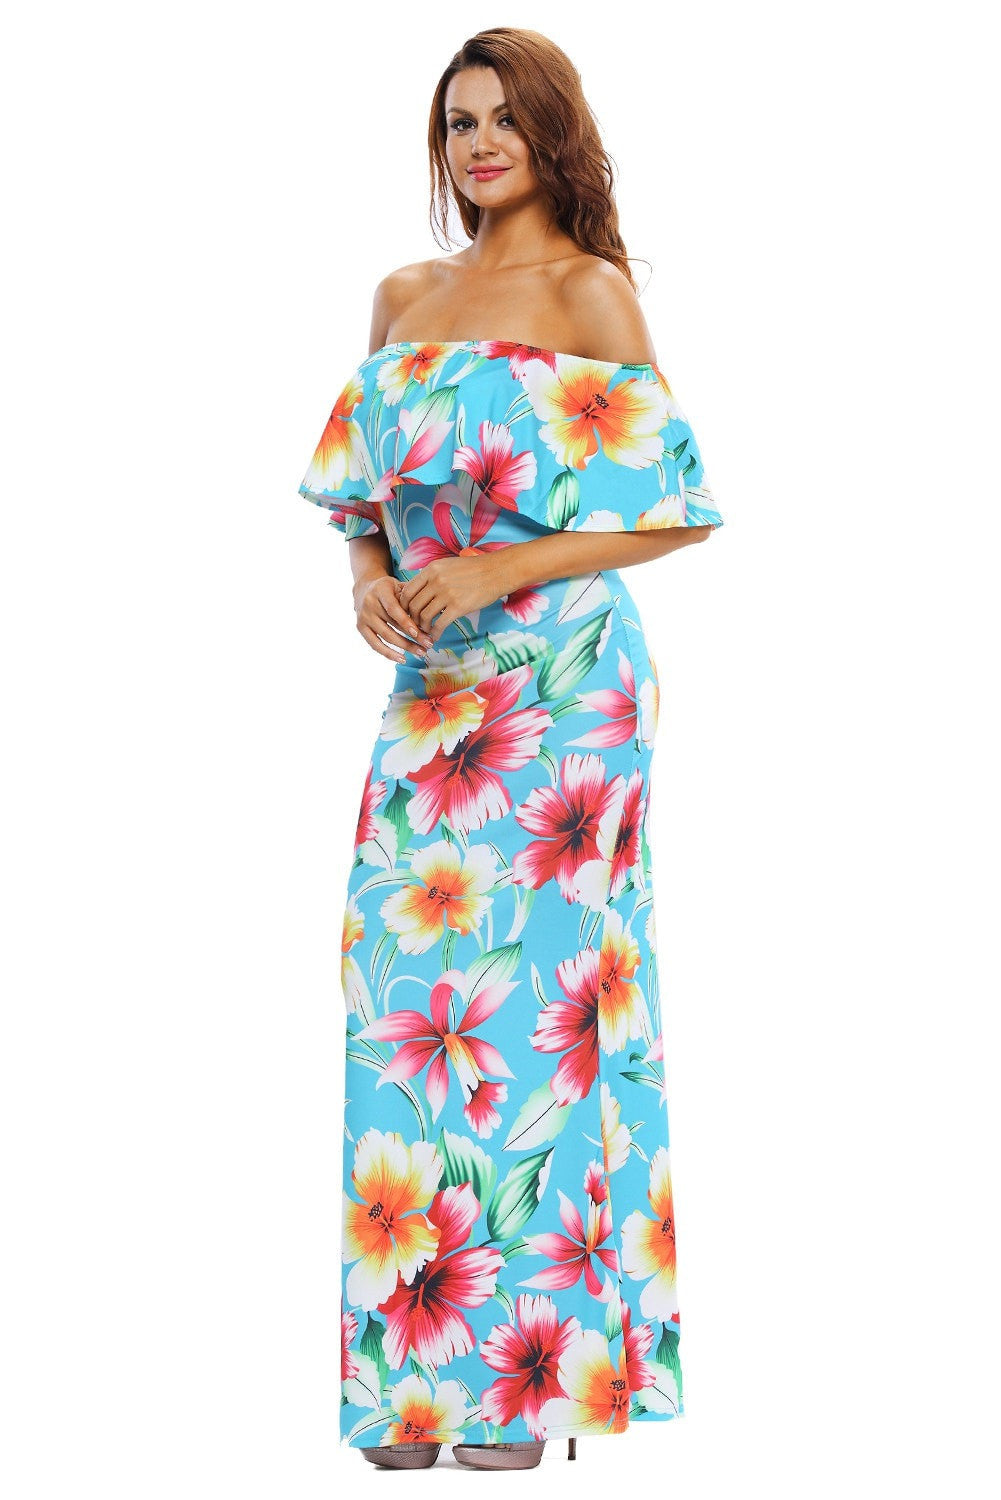 Faith Flowing Floral Maxi Dress in Teal Blue - Budget Babe Couture